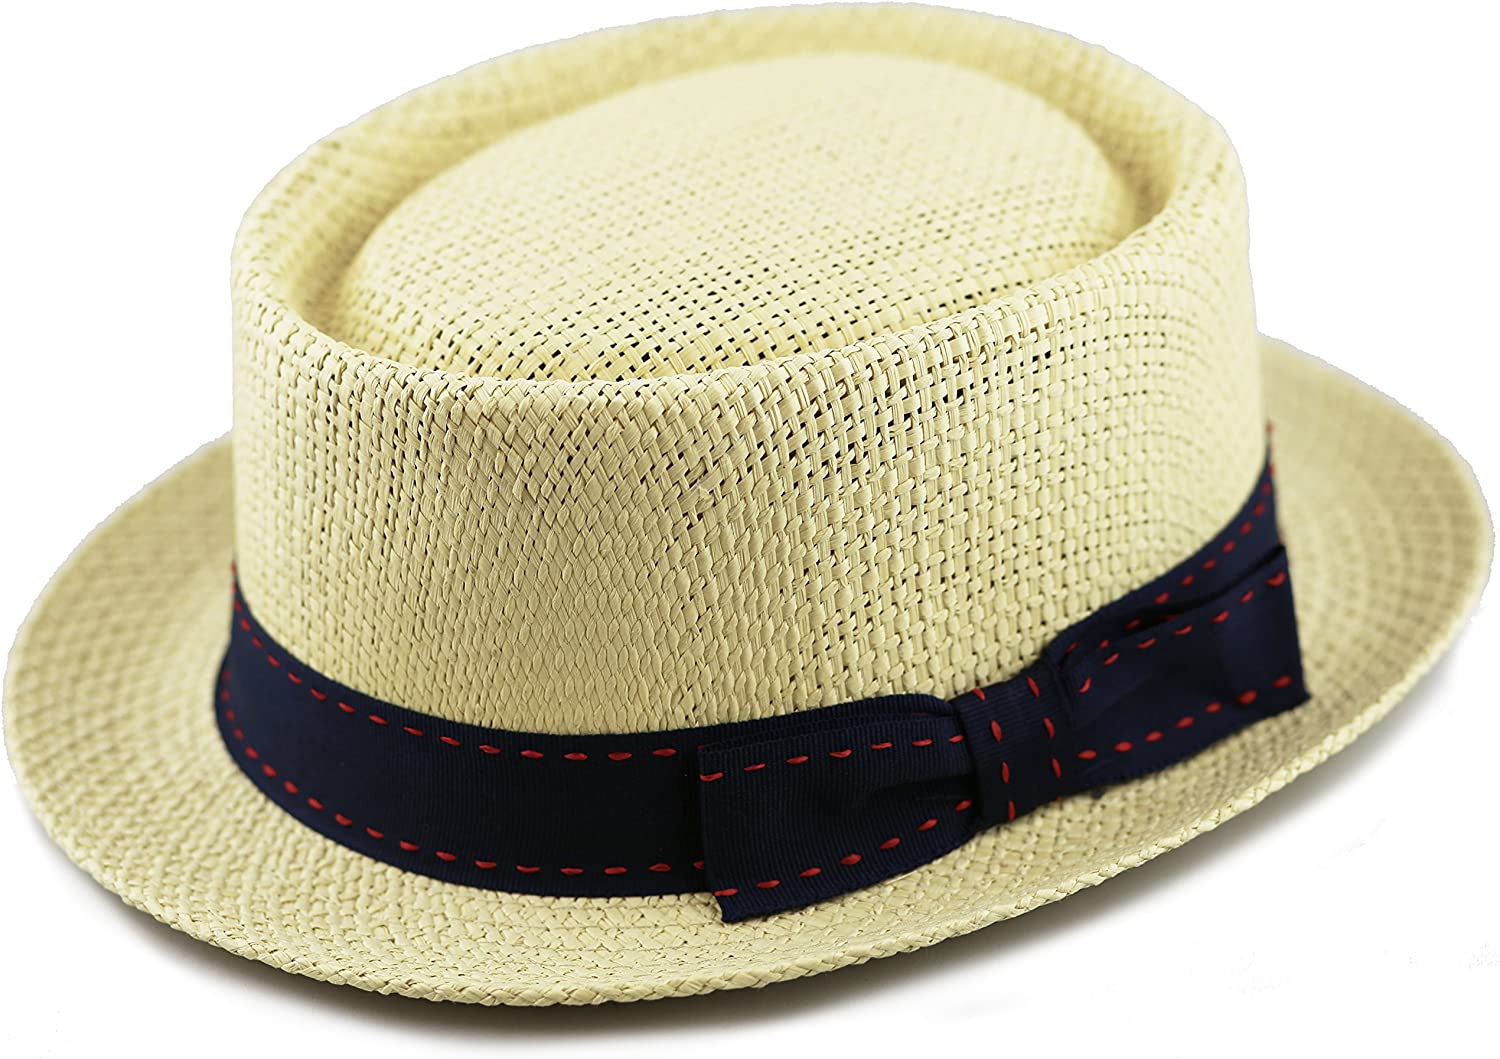 The Hat Depot Unisex Summer Paper Straw Short Brim Porkpie Stitched Grosgrain Band